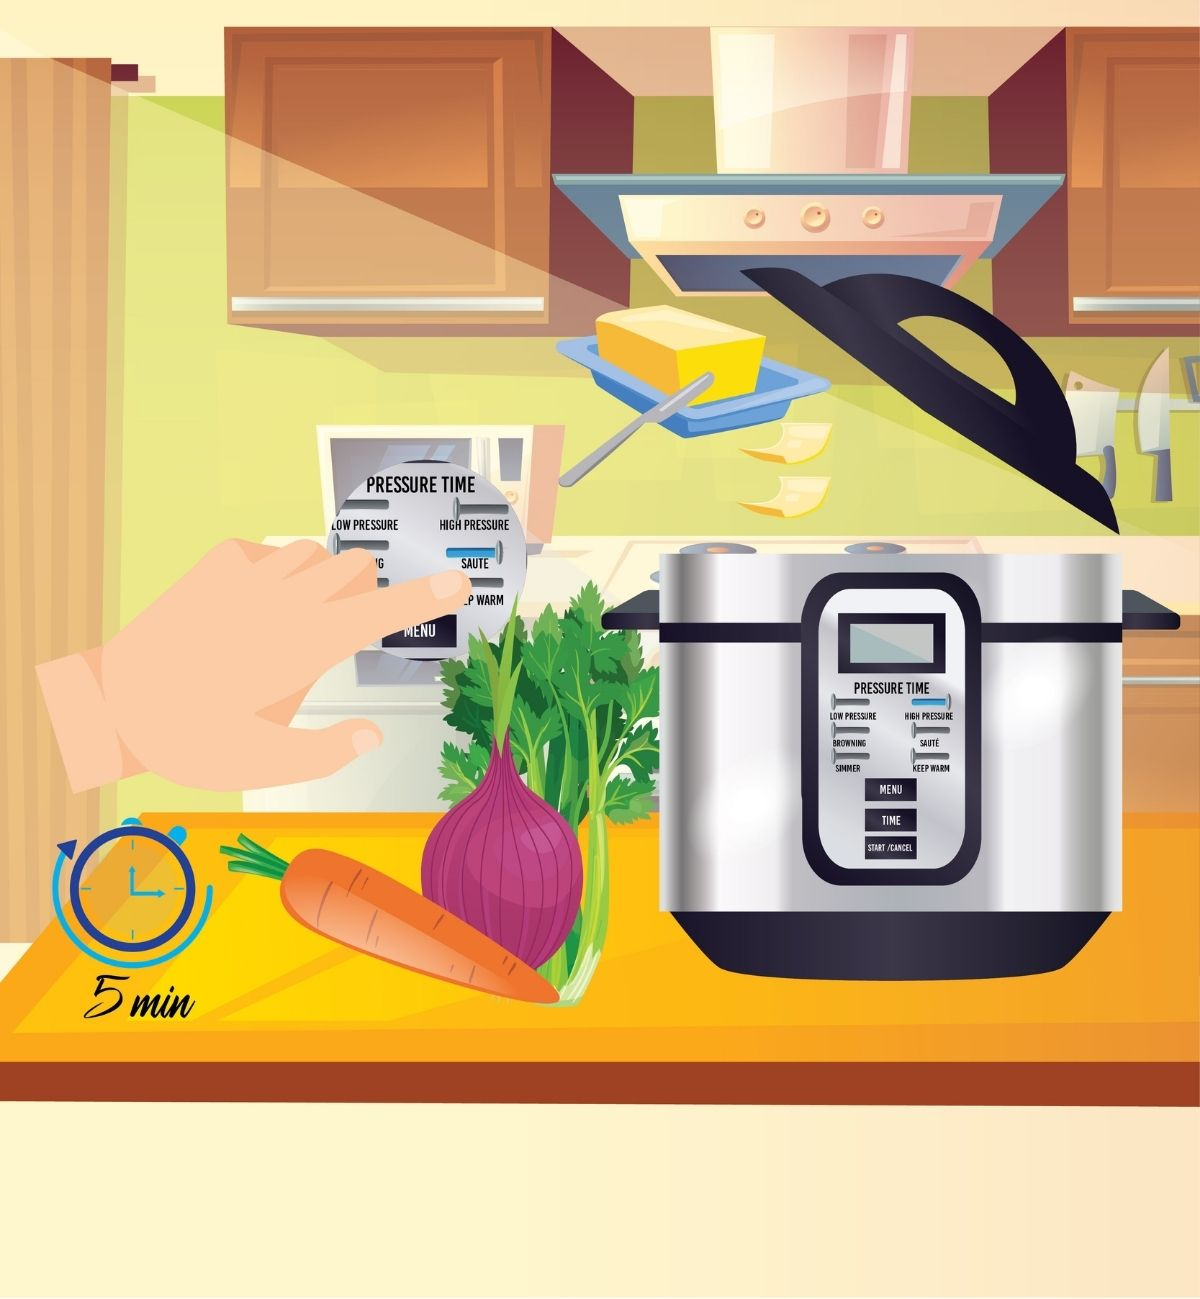 Select Saute and add butter to the pressure cooker pot